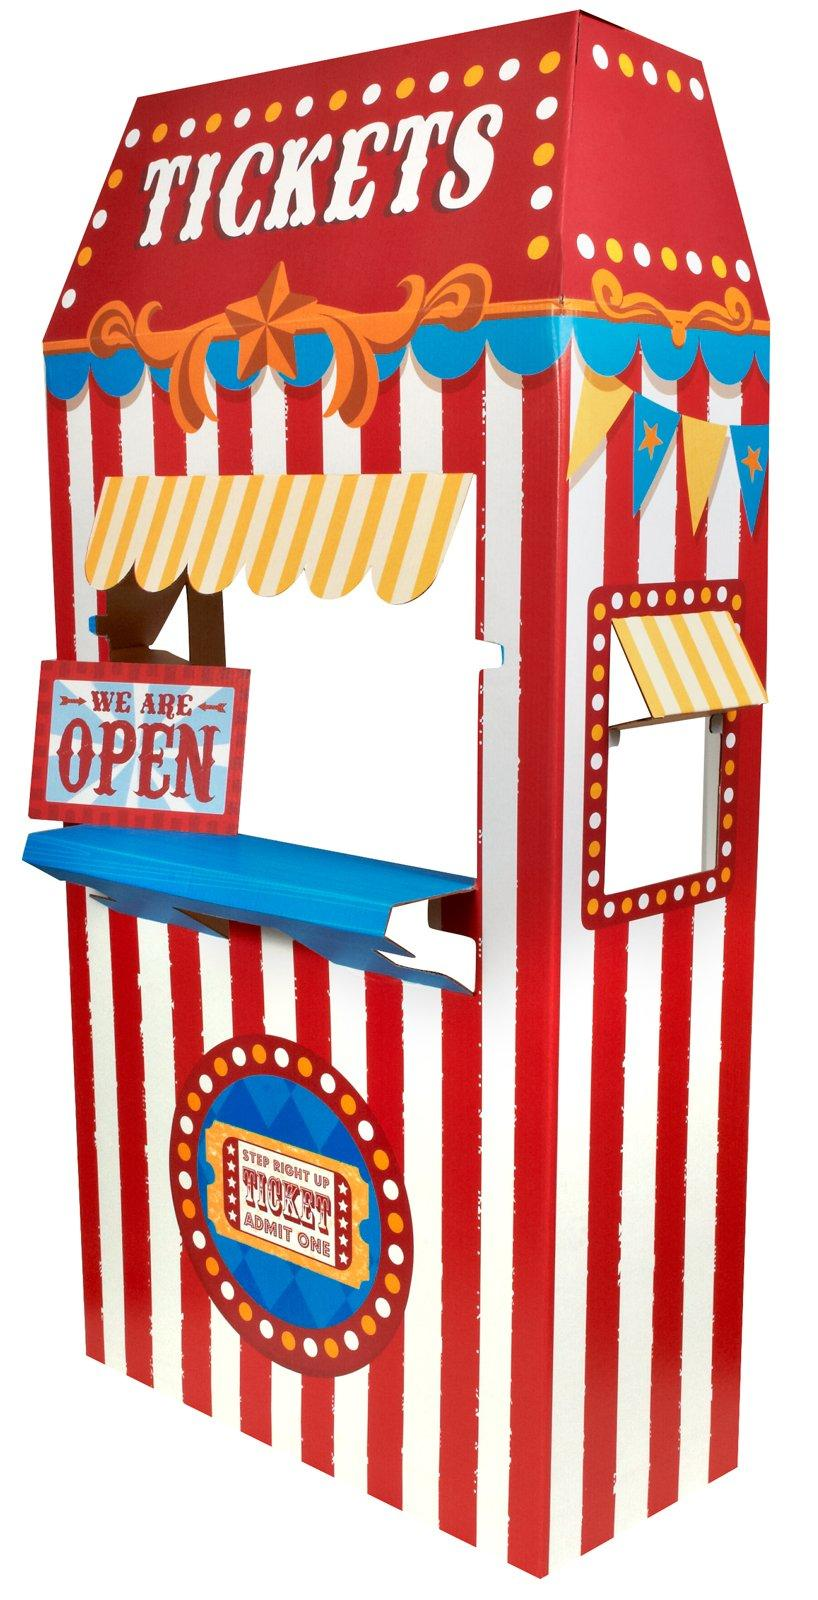 Carnival clipart ticket booth 6' Tall com Cardboard Stand